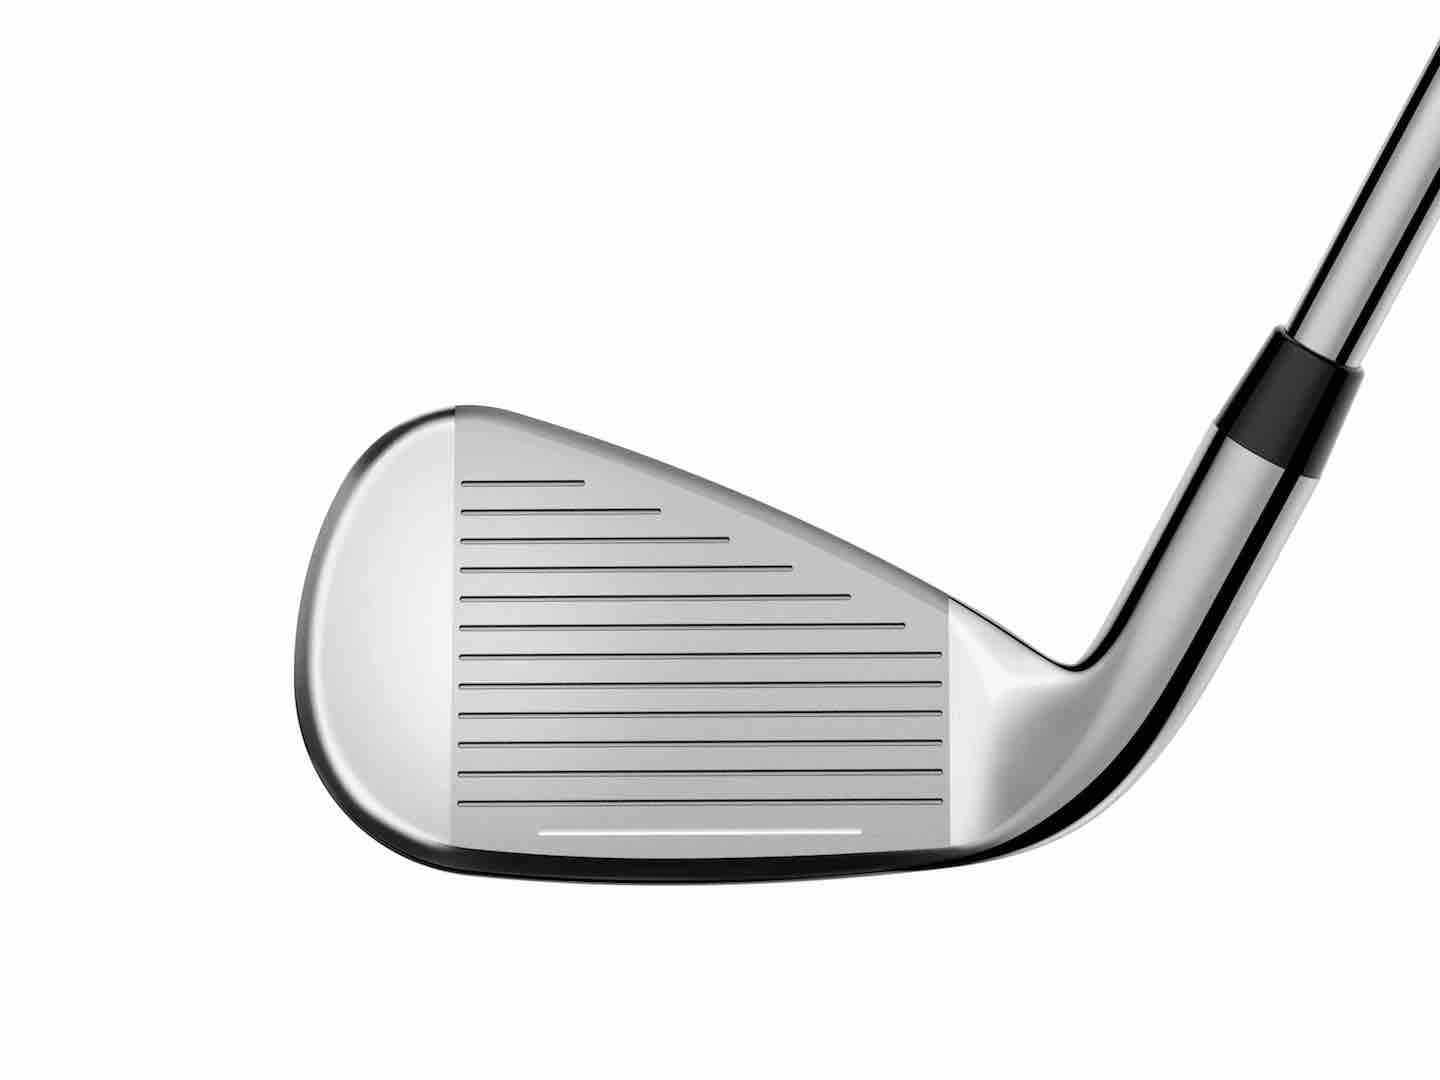 Golf equipment – Cobra's most forgiving irons yet